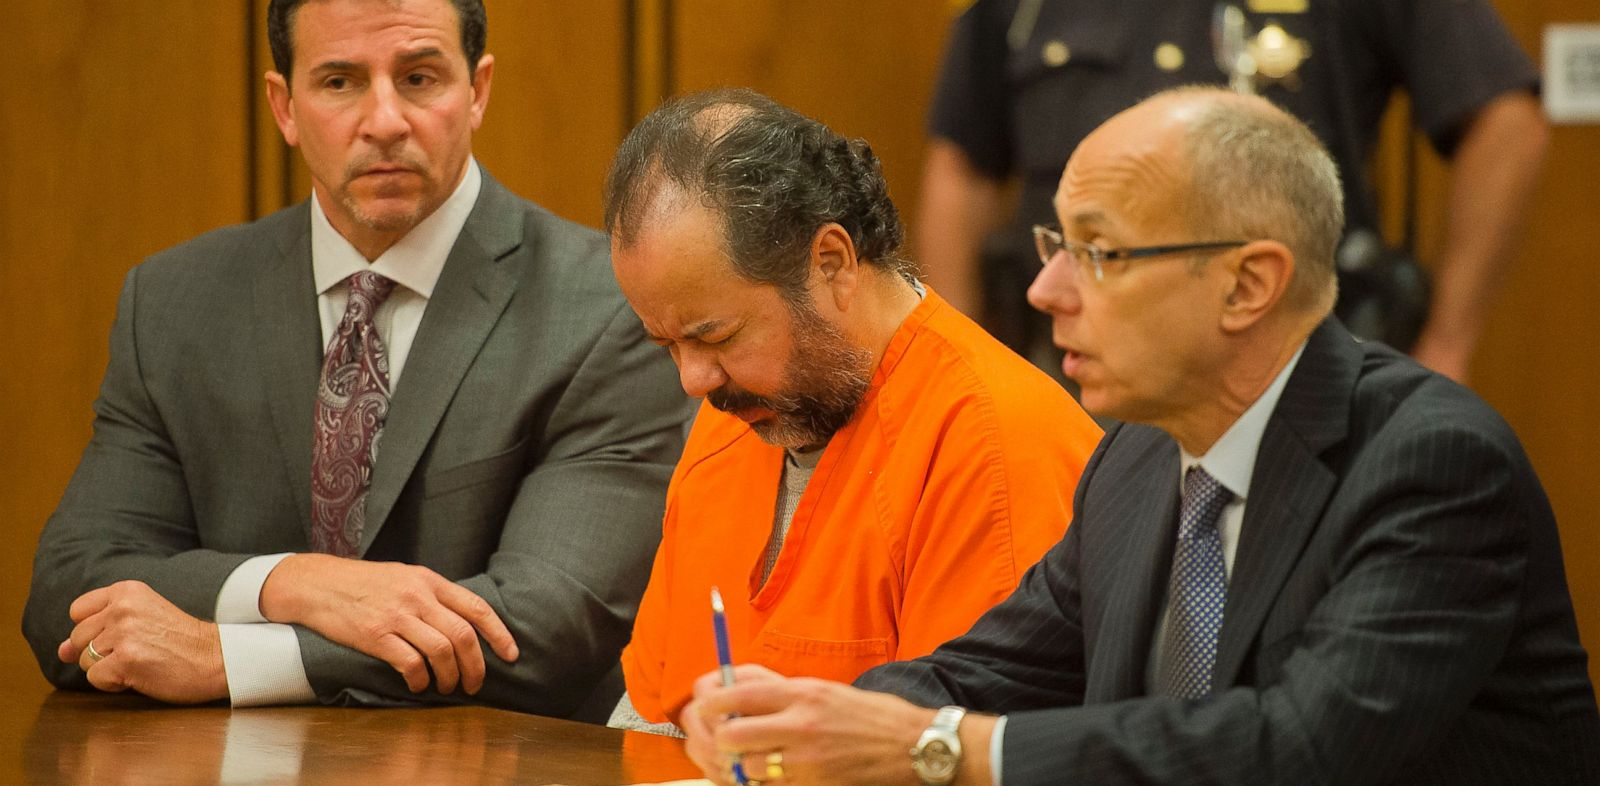 PHOTO: Judge Rules Ariel Castro Fit To Stand Trial